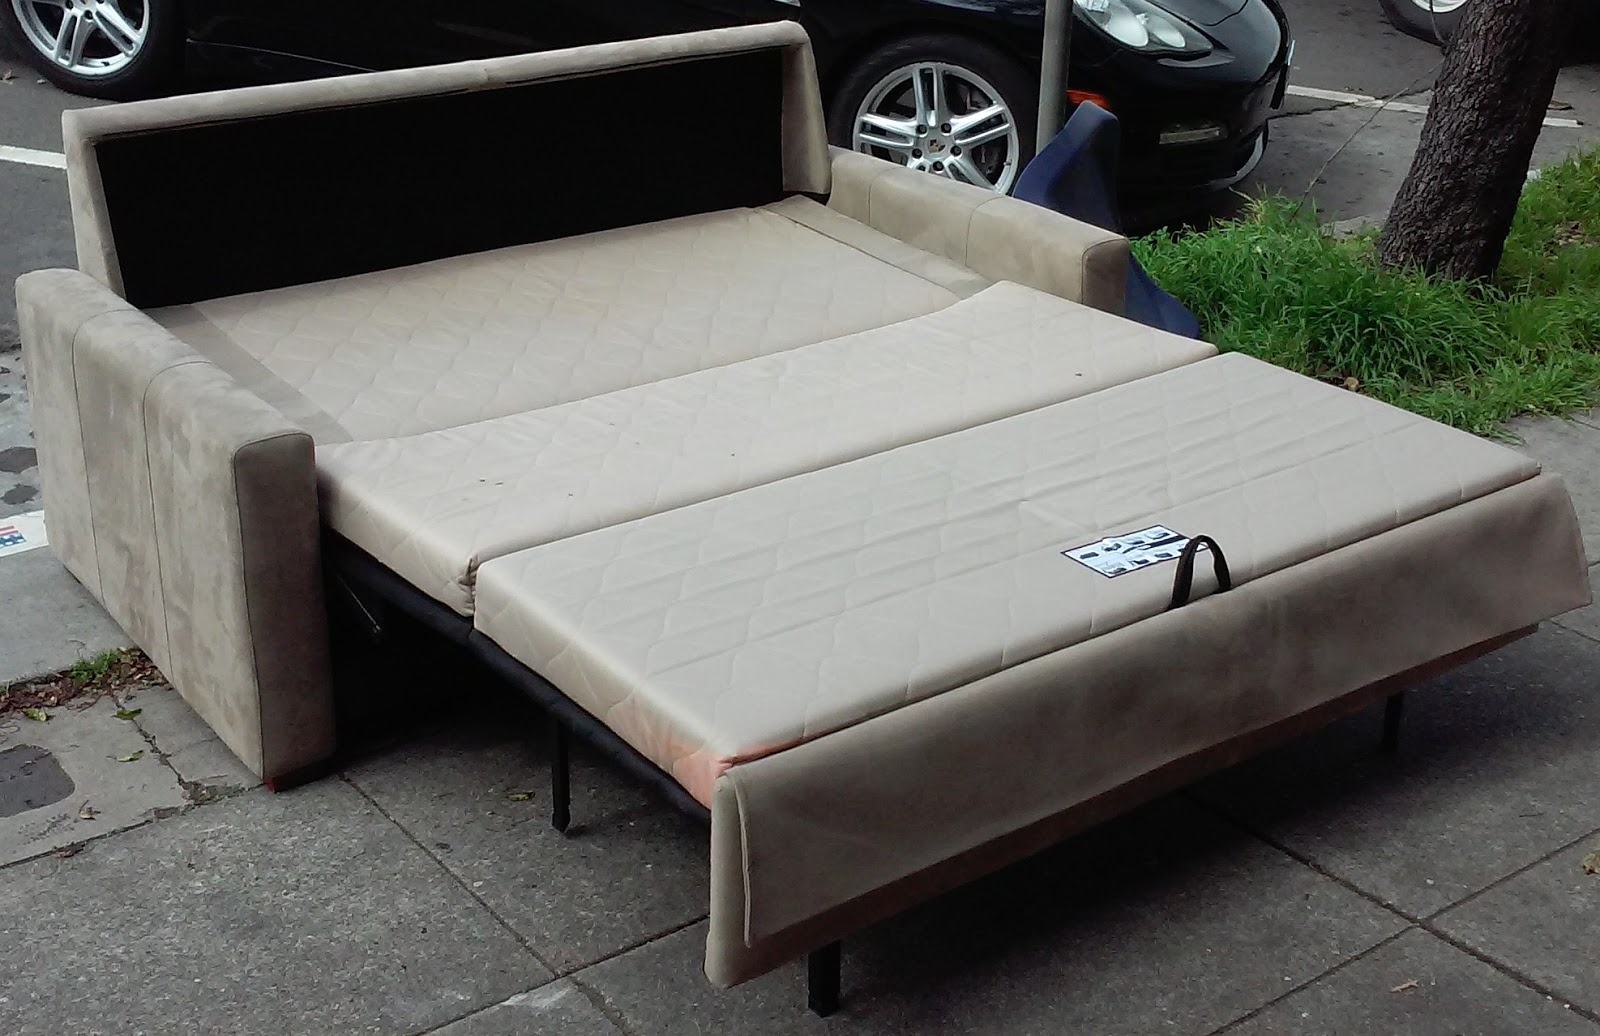 60 Inch Wide Sleeper Sofa Corner Bed With Storage Friheten Manual Uhuru Furniture And Collectibles Sold Room Board Quot